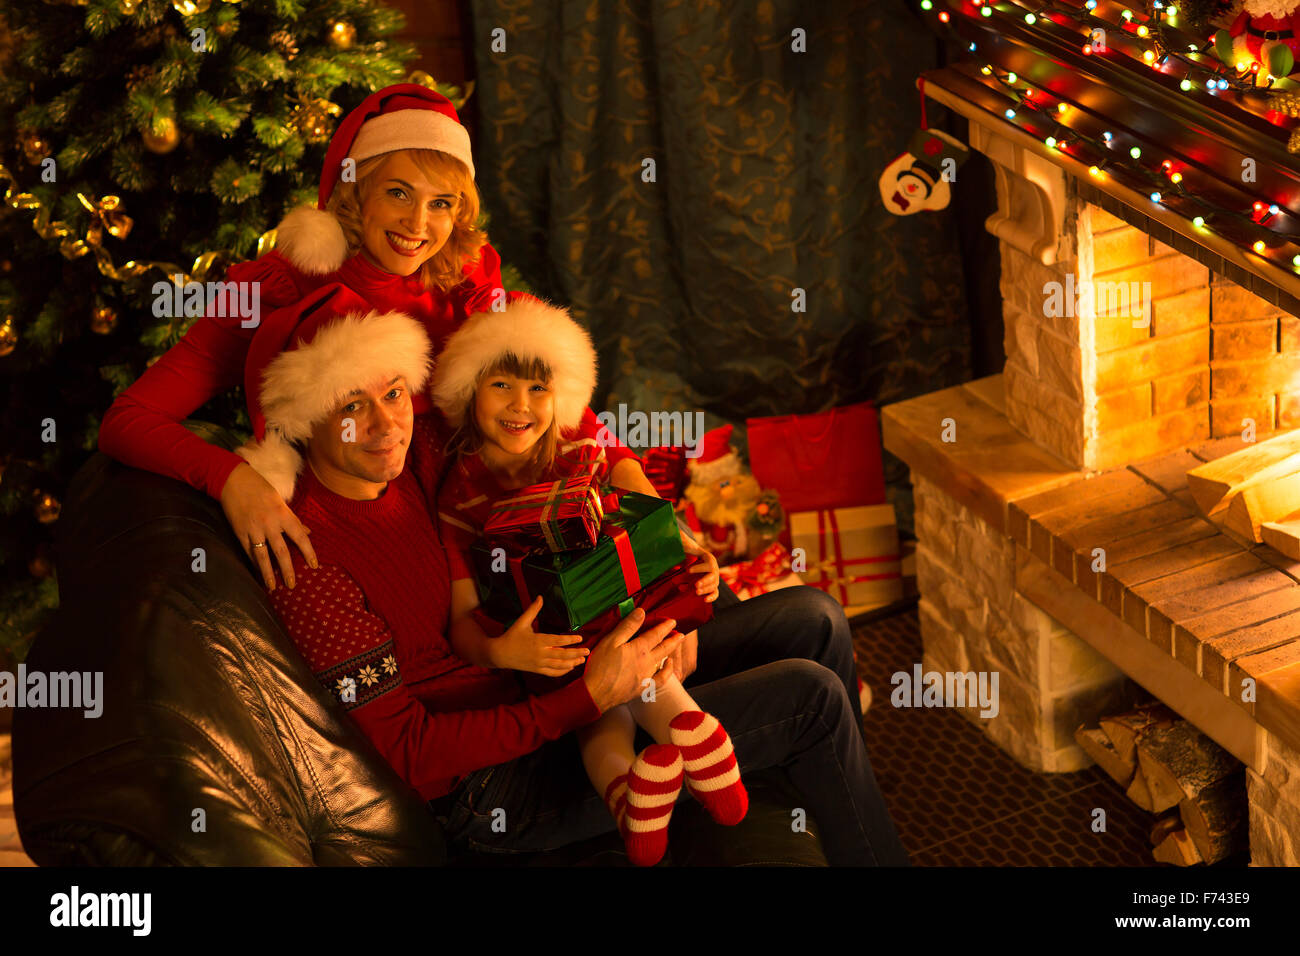 Happy family of three persons in red hats with gifts sitting at Christmas tree near fireplace - Stock Image